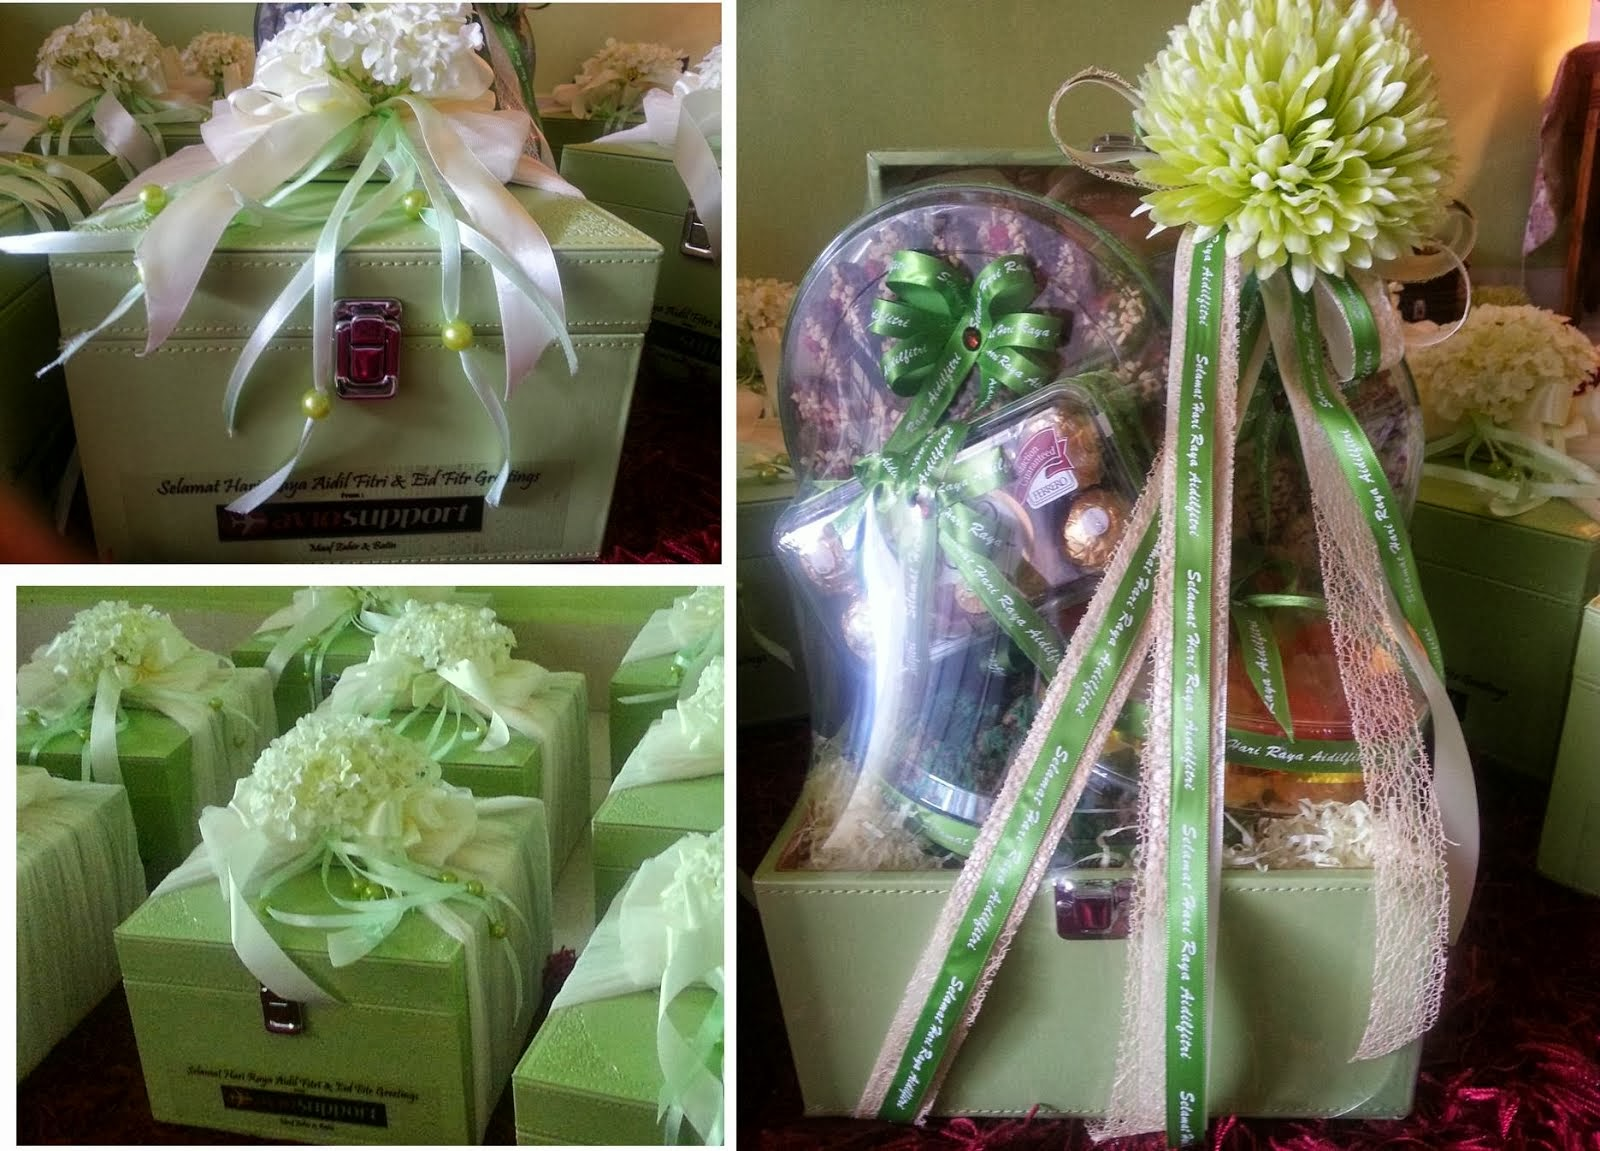 Tempahan Hamper 2013 - Ordered by Avio Support Singapore